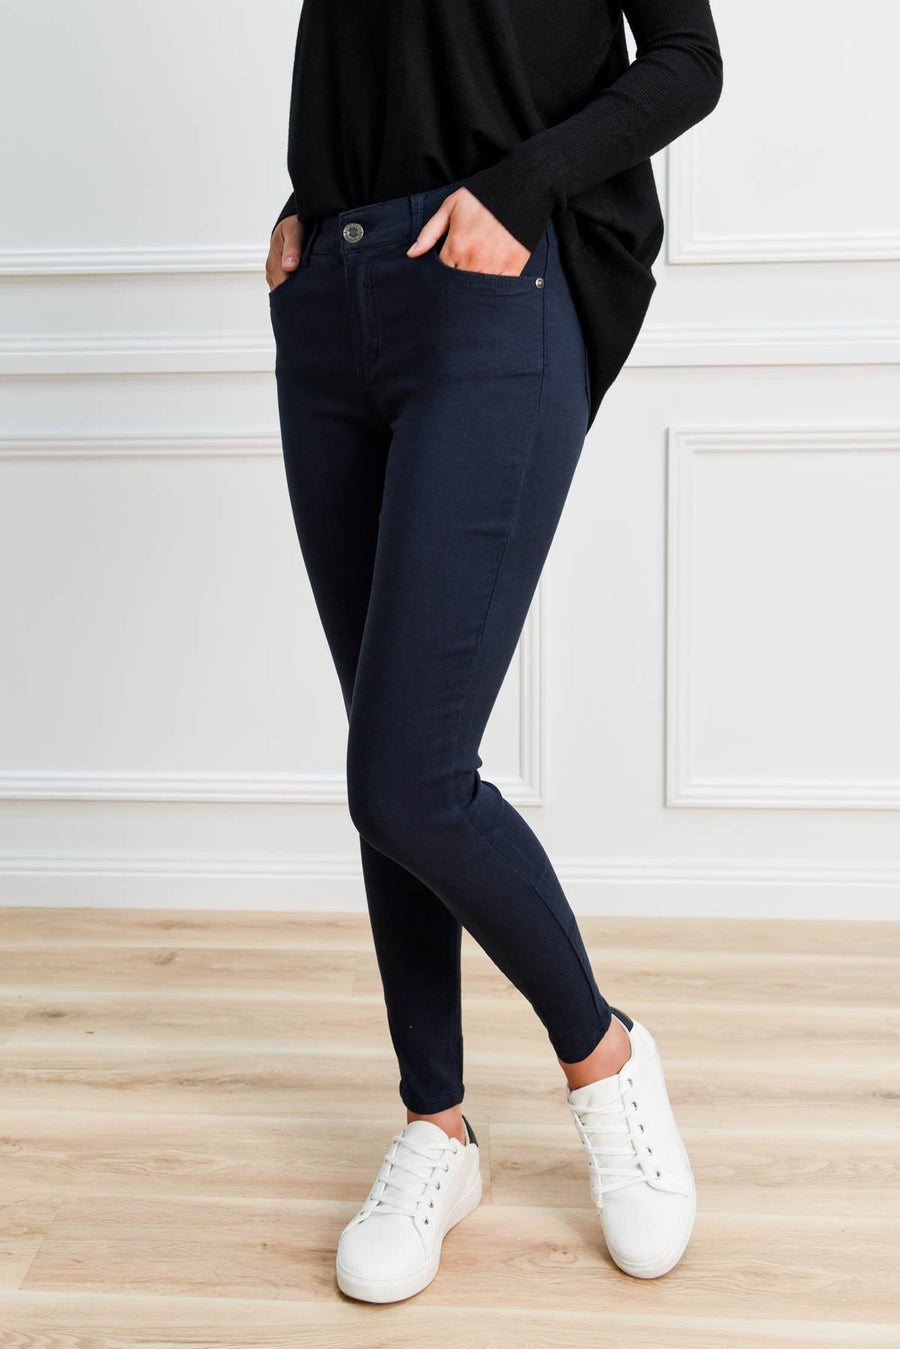 Kyla Stretch Jeans | Navy Jeans Gray Label